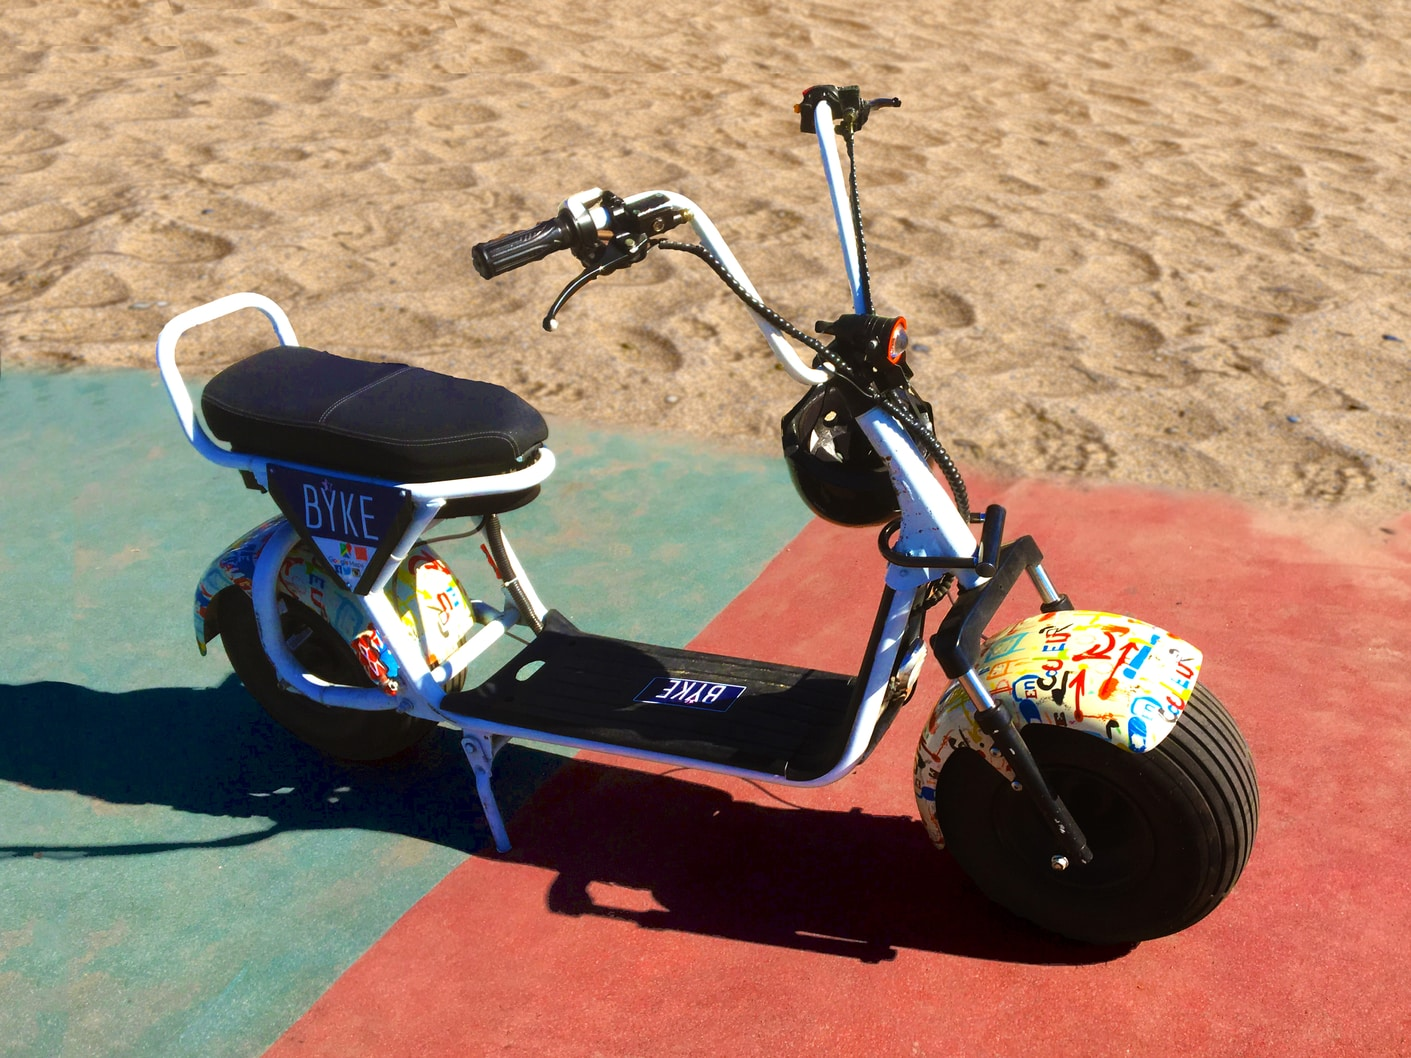 We provide the best electric scooters